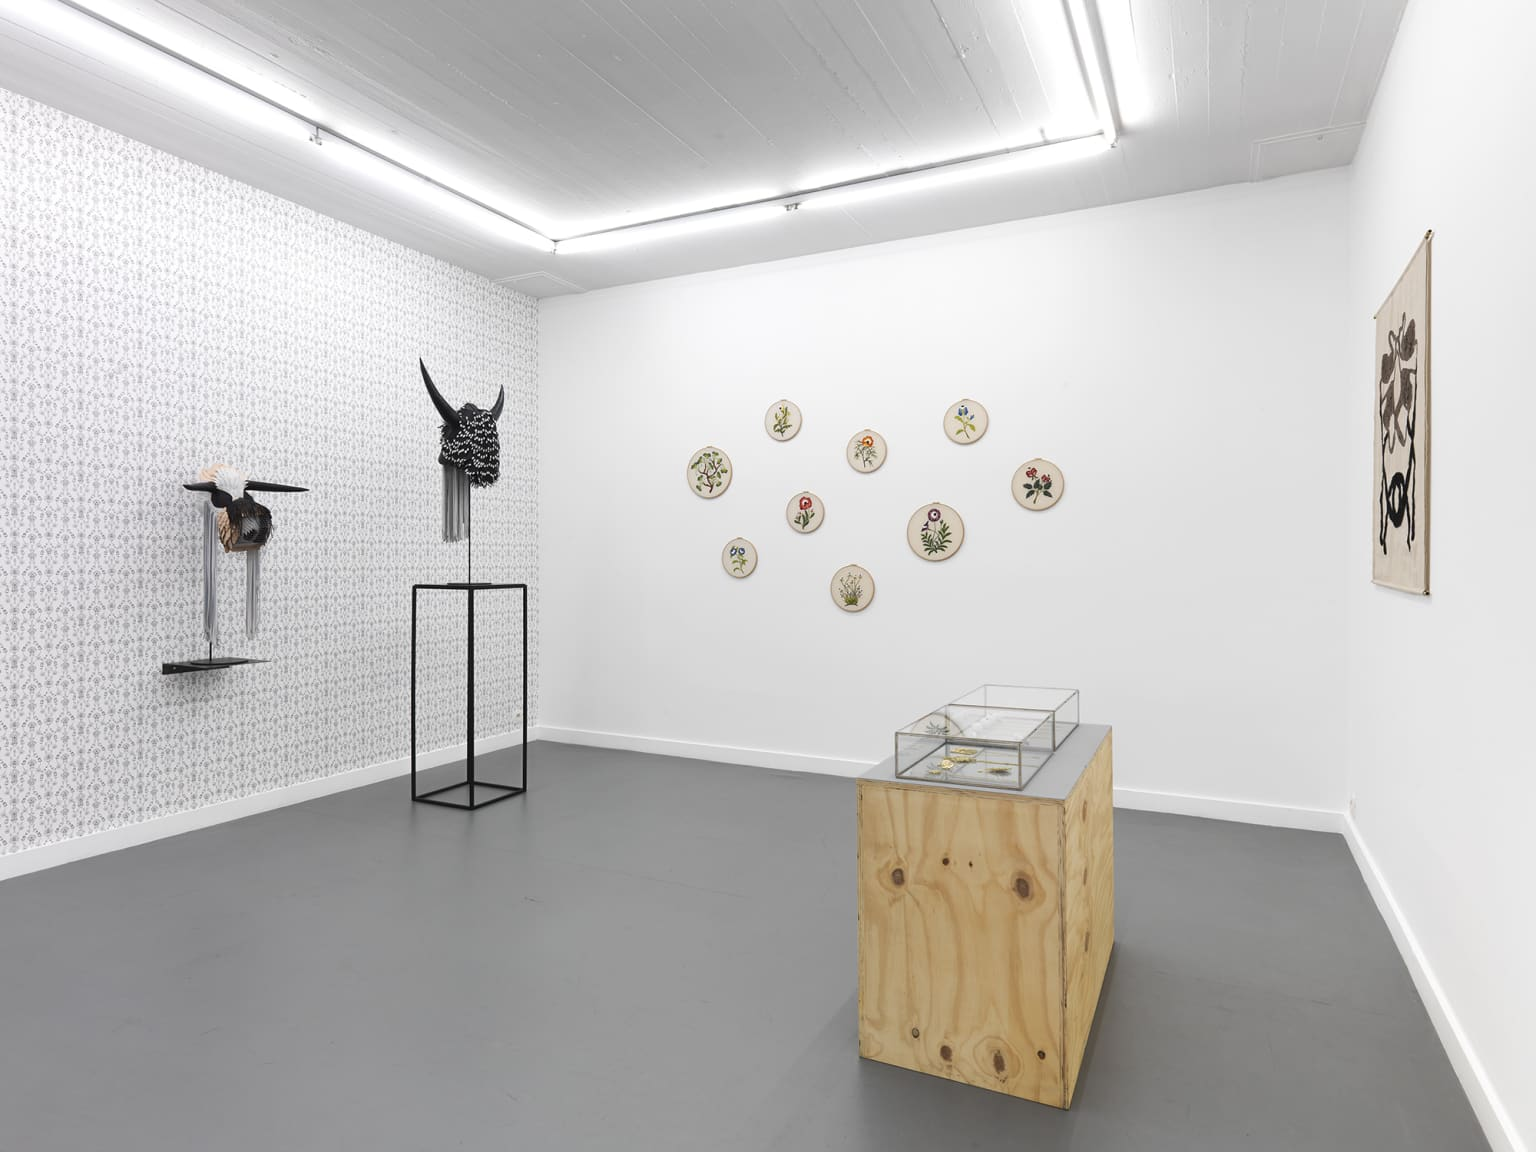 'Never Alone' installation view at Rodolphe Janssen, Brussels